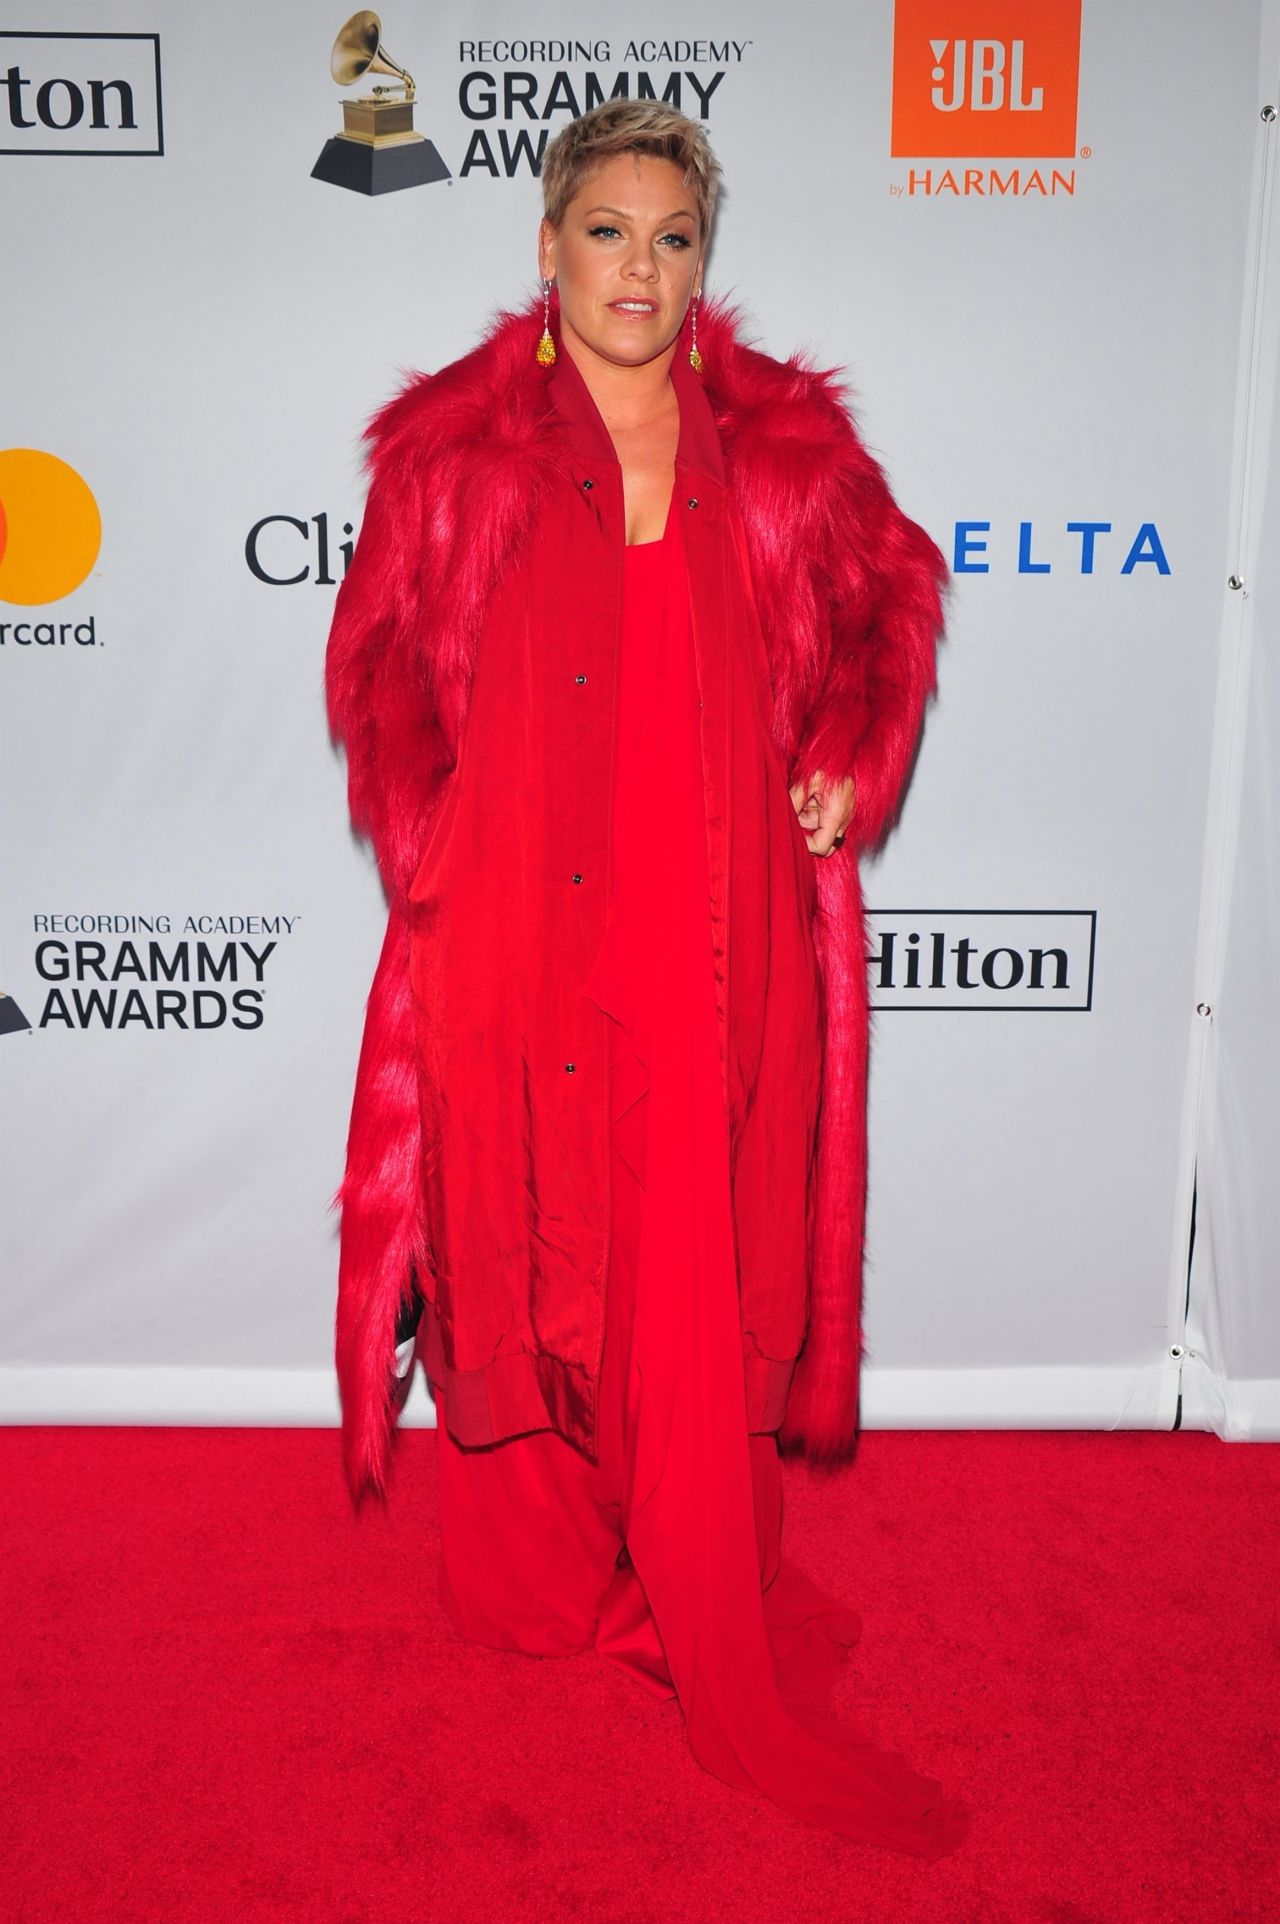 http://celebmafia.com/wp-content/uploads/2018/01/pink-clive-davis-and-recording-academy-pre-grammy-gala-in-nyc-1.jpg